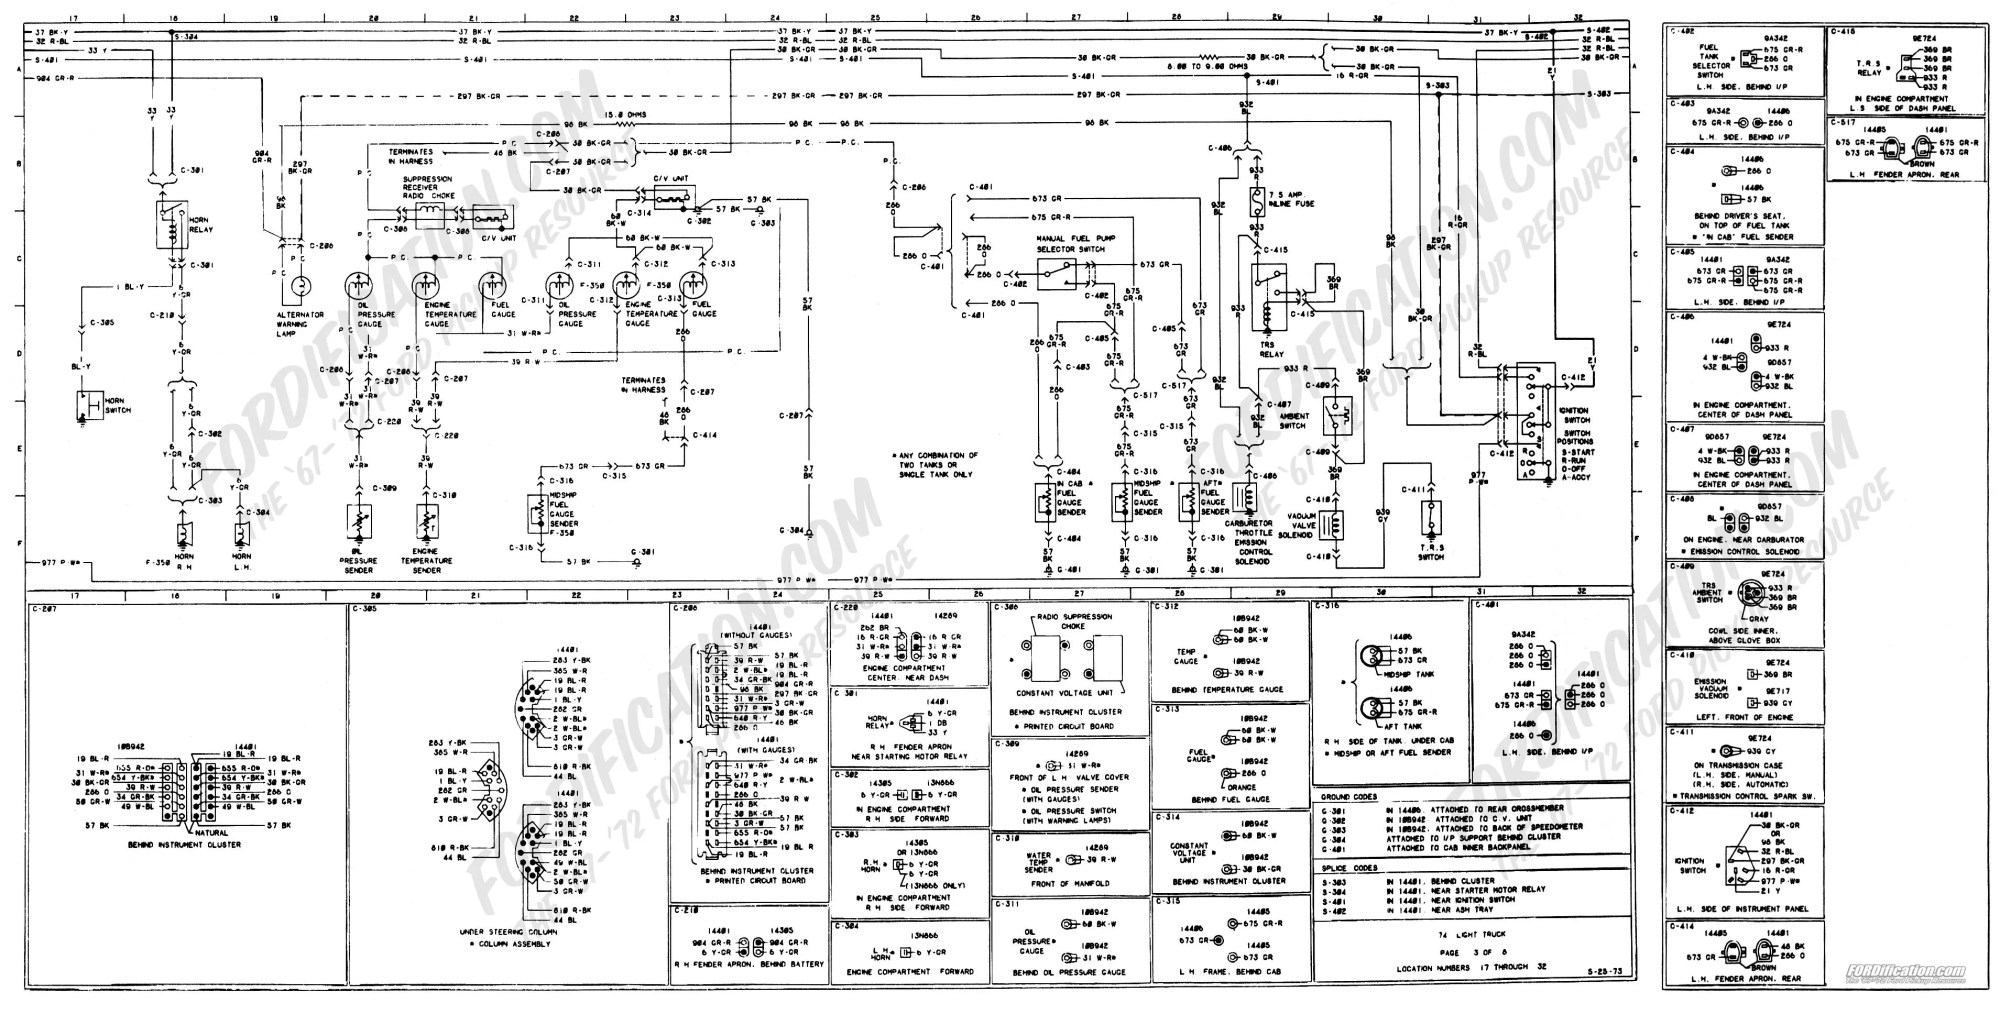 hight resolution of f350 radio wiring diagram furthermore 2010 ford f 150 fuse box f350 radio wiring diagram furthermore 2010 ford f 150 fuse box